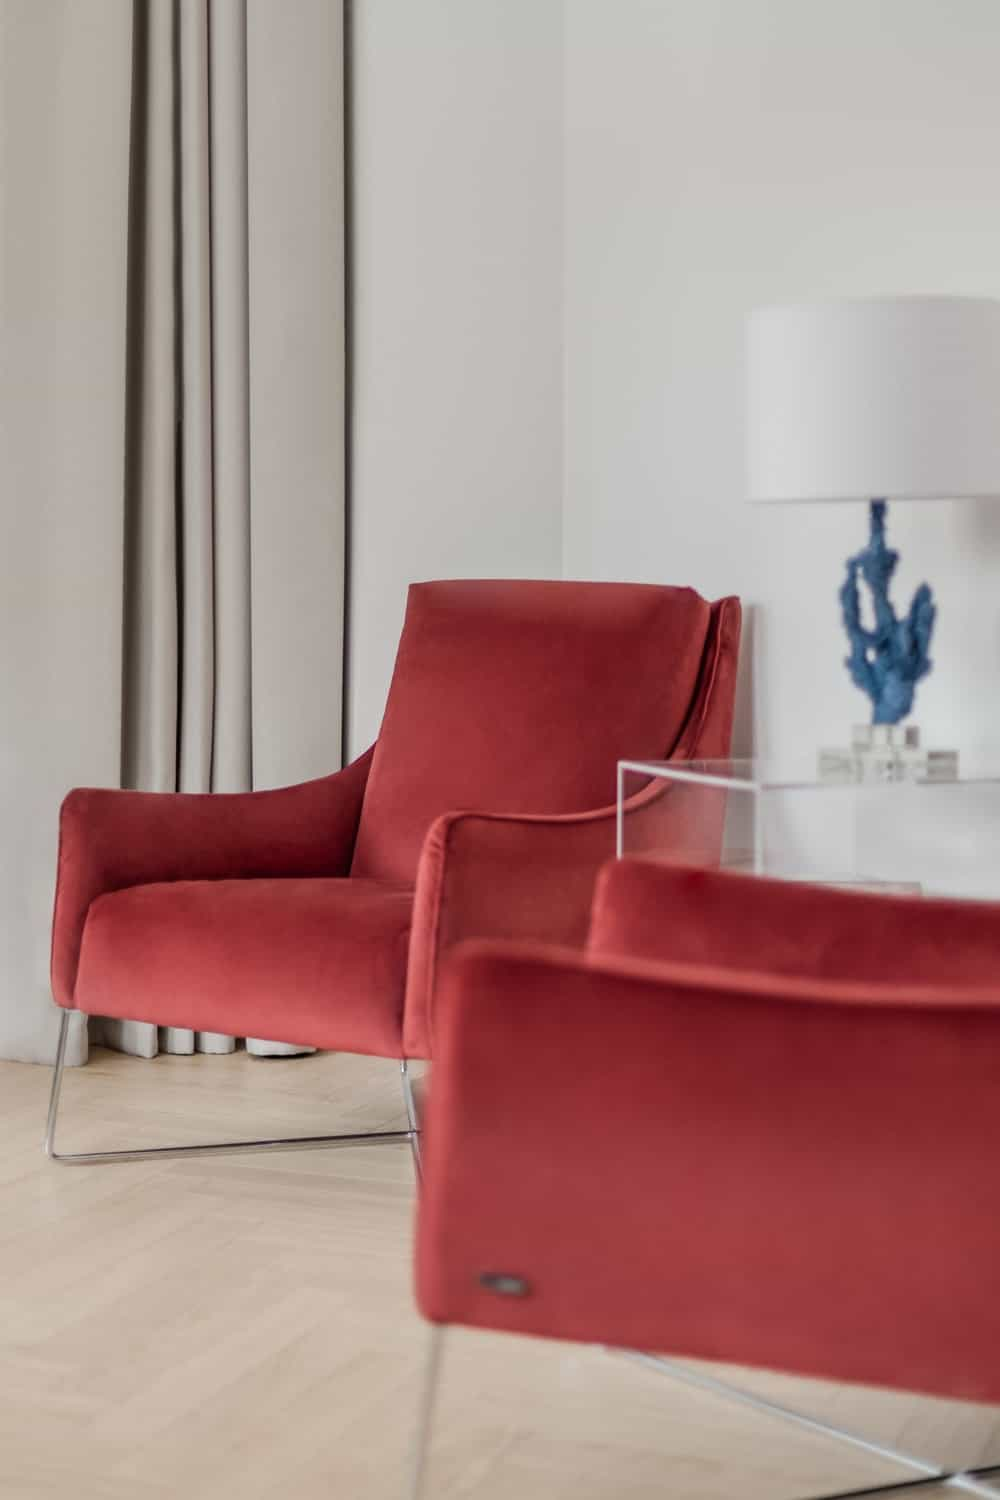 The two cushioned chairs have a red velvet aesthetic that stands out against the light tone of the walls and floor.